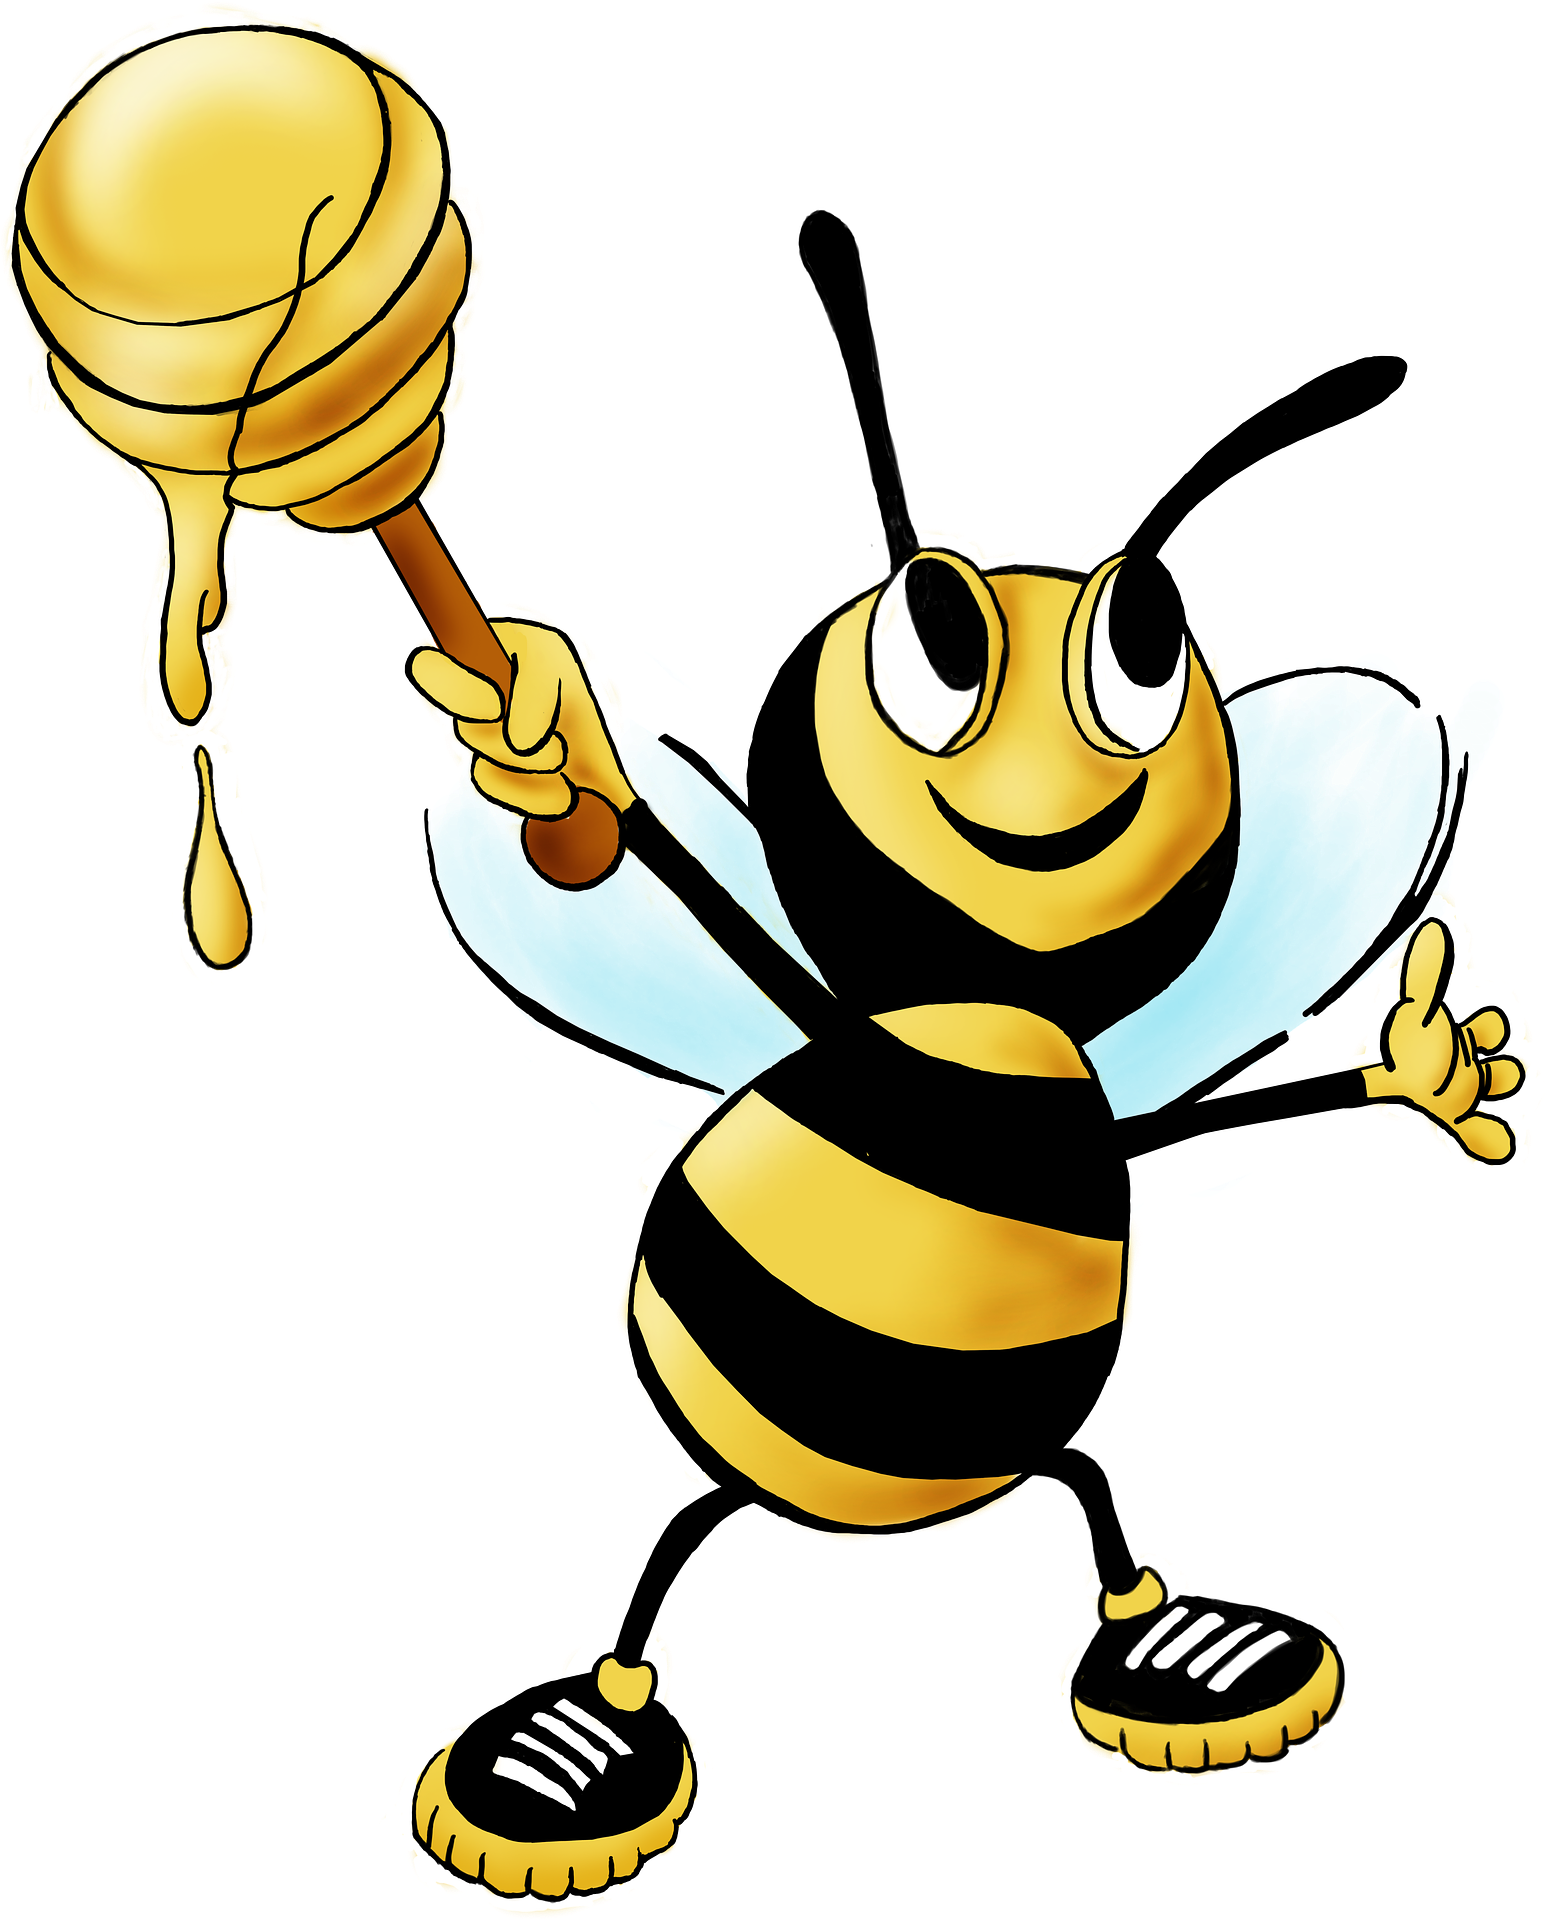 Learn About Honey & Honeybees